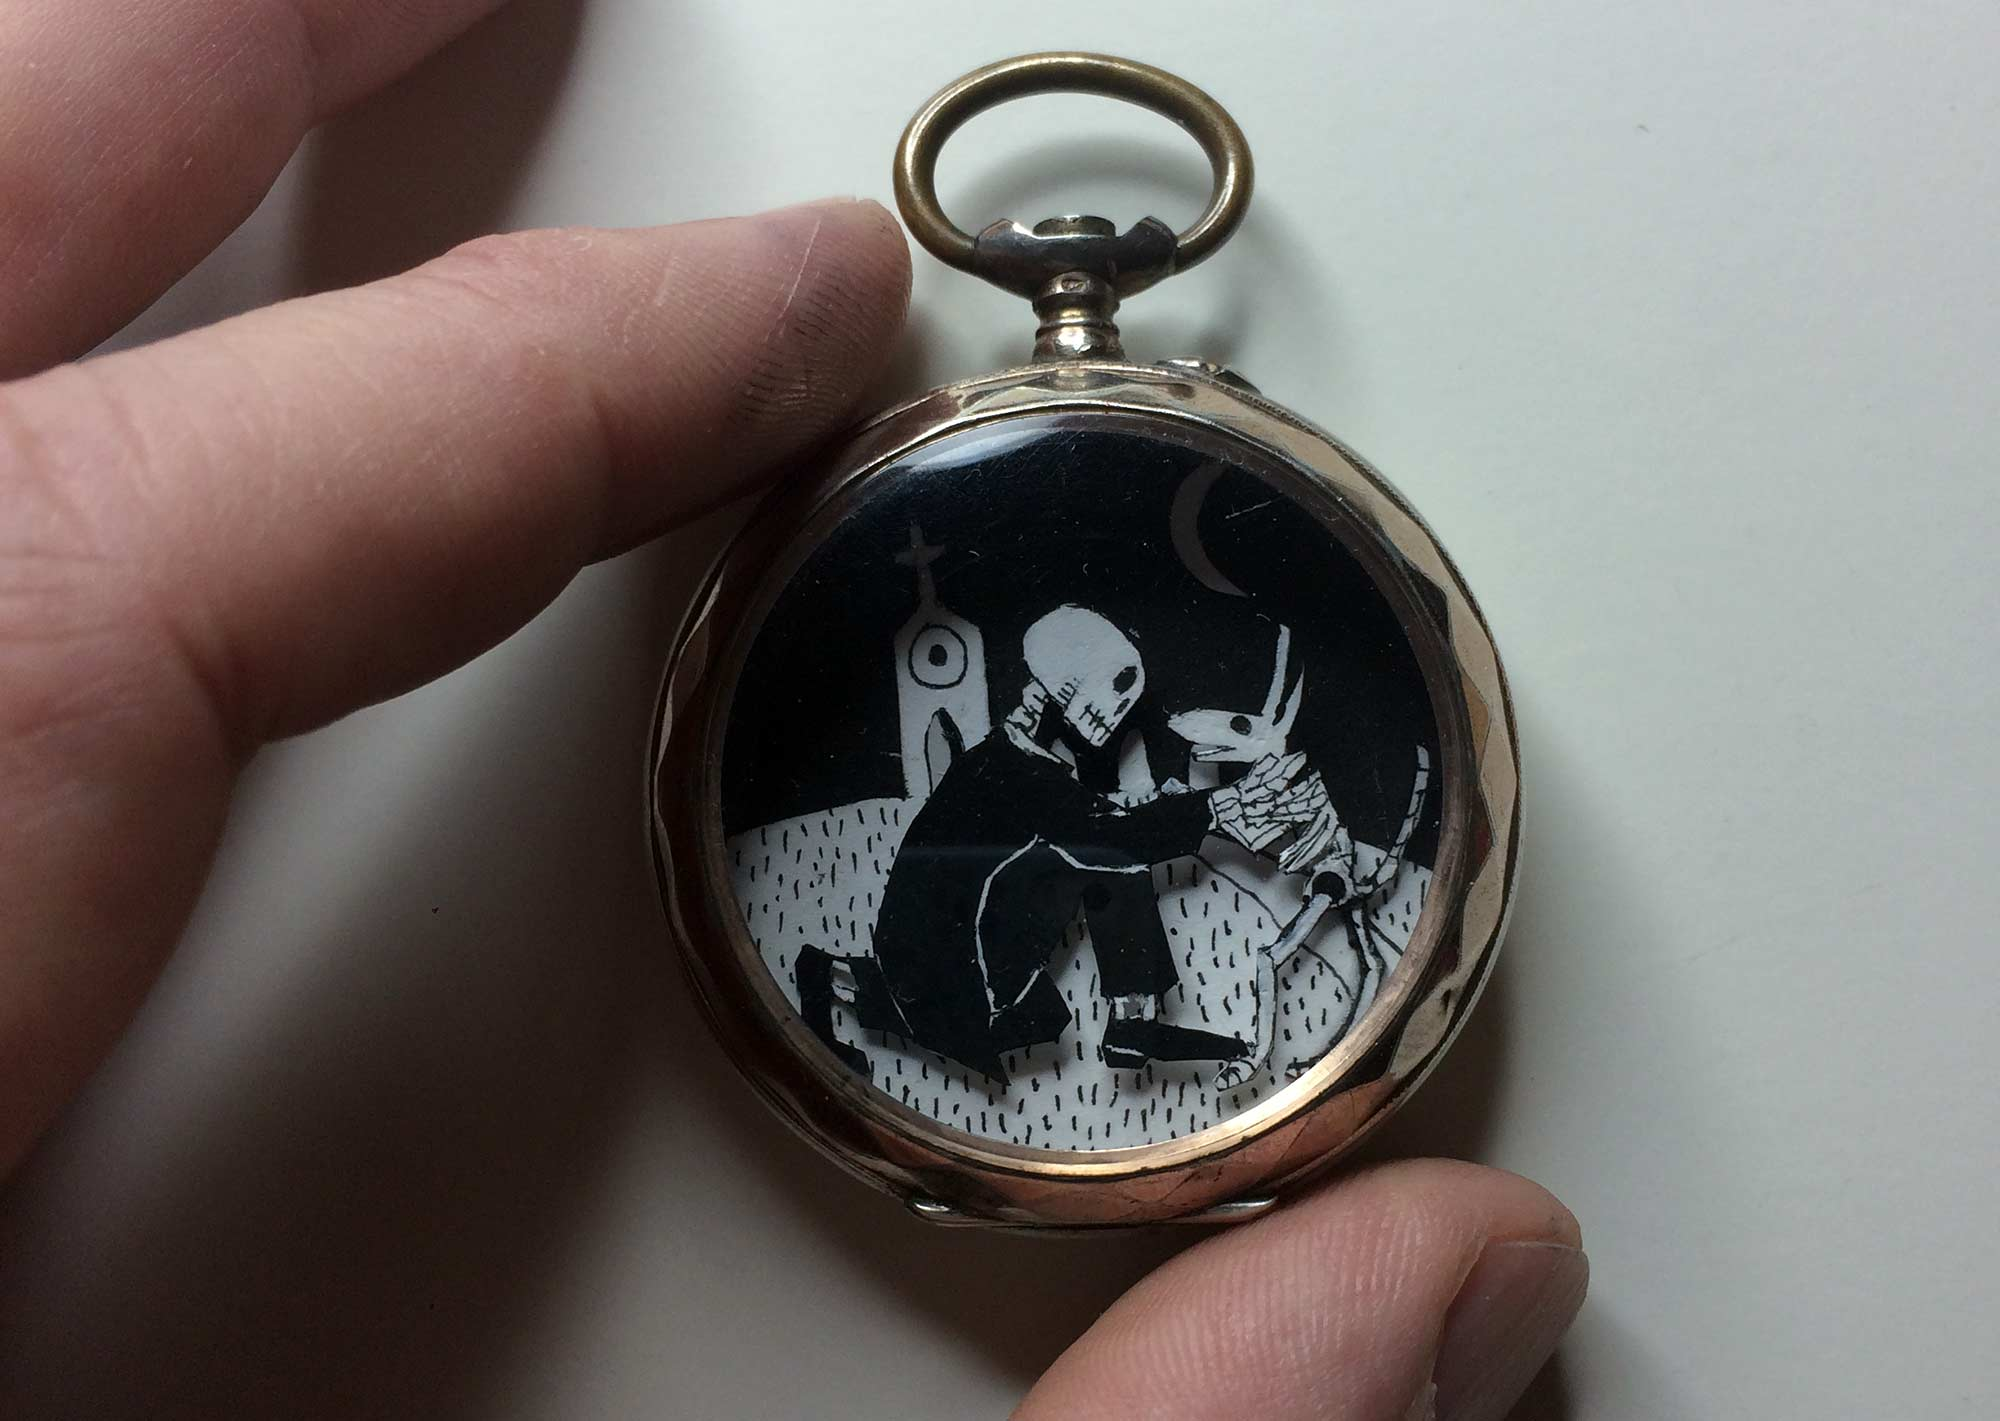 A Reunion (in a pocket watch)